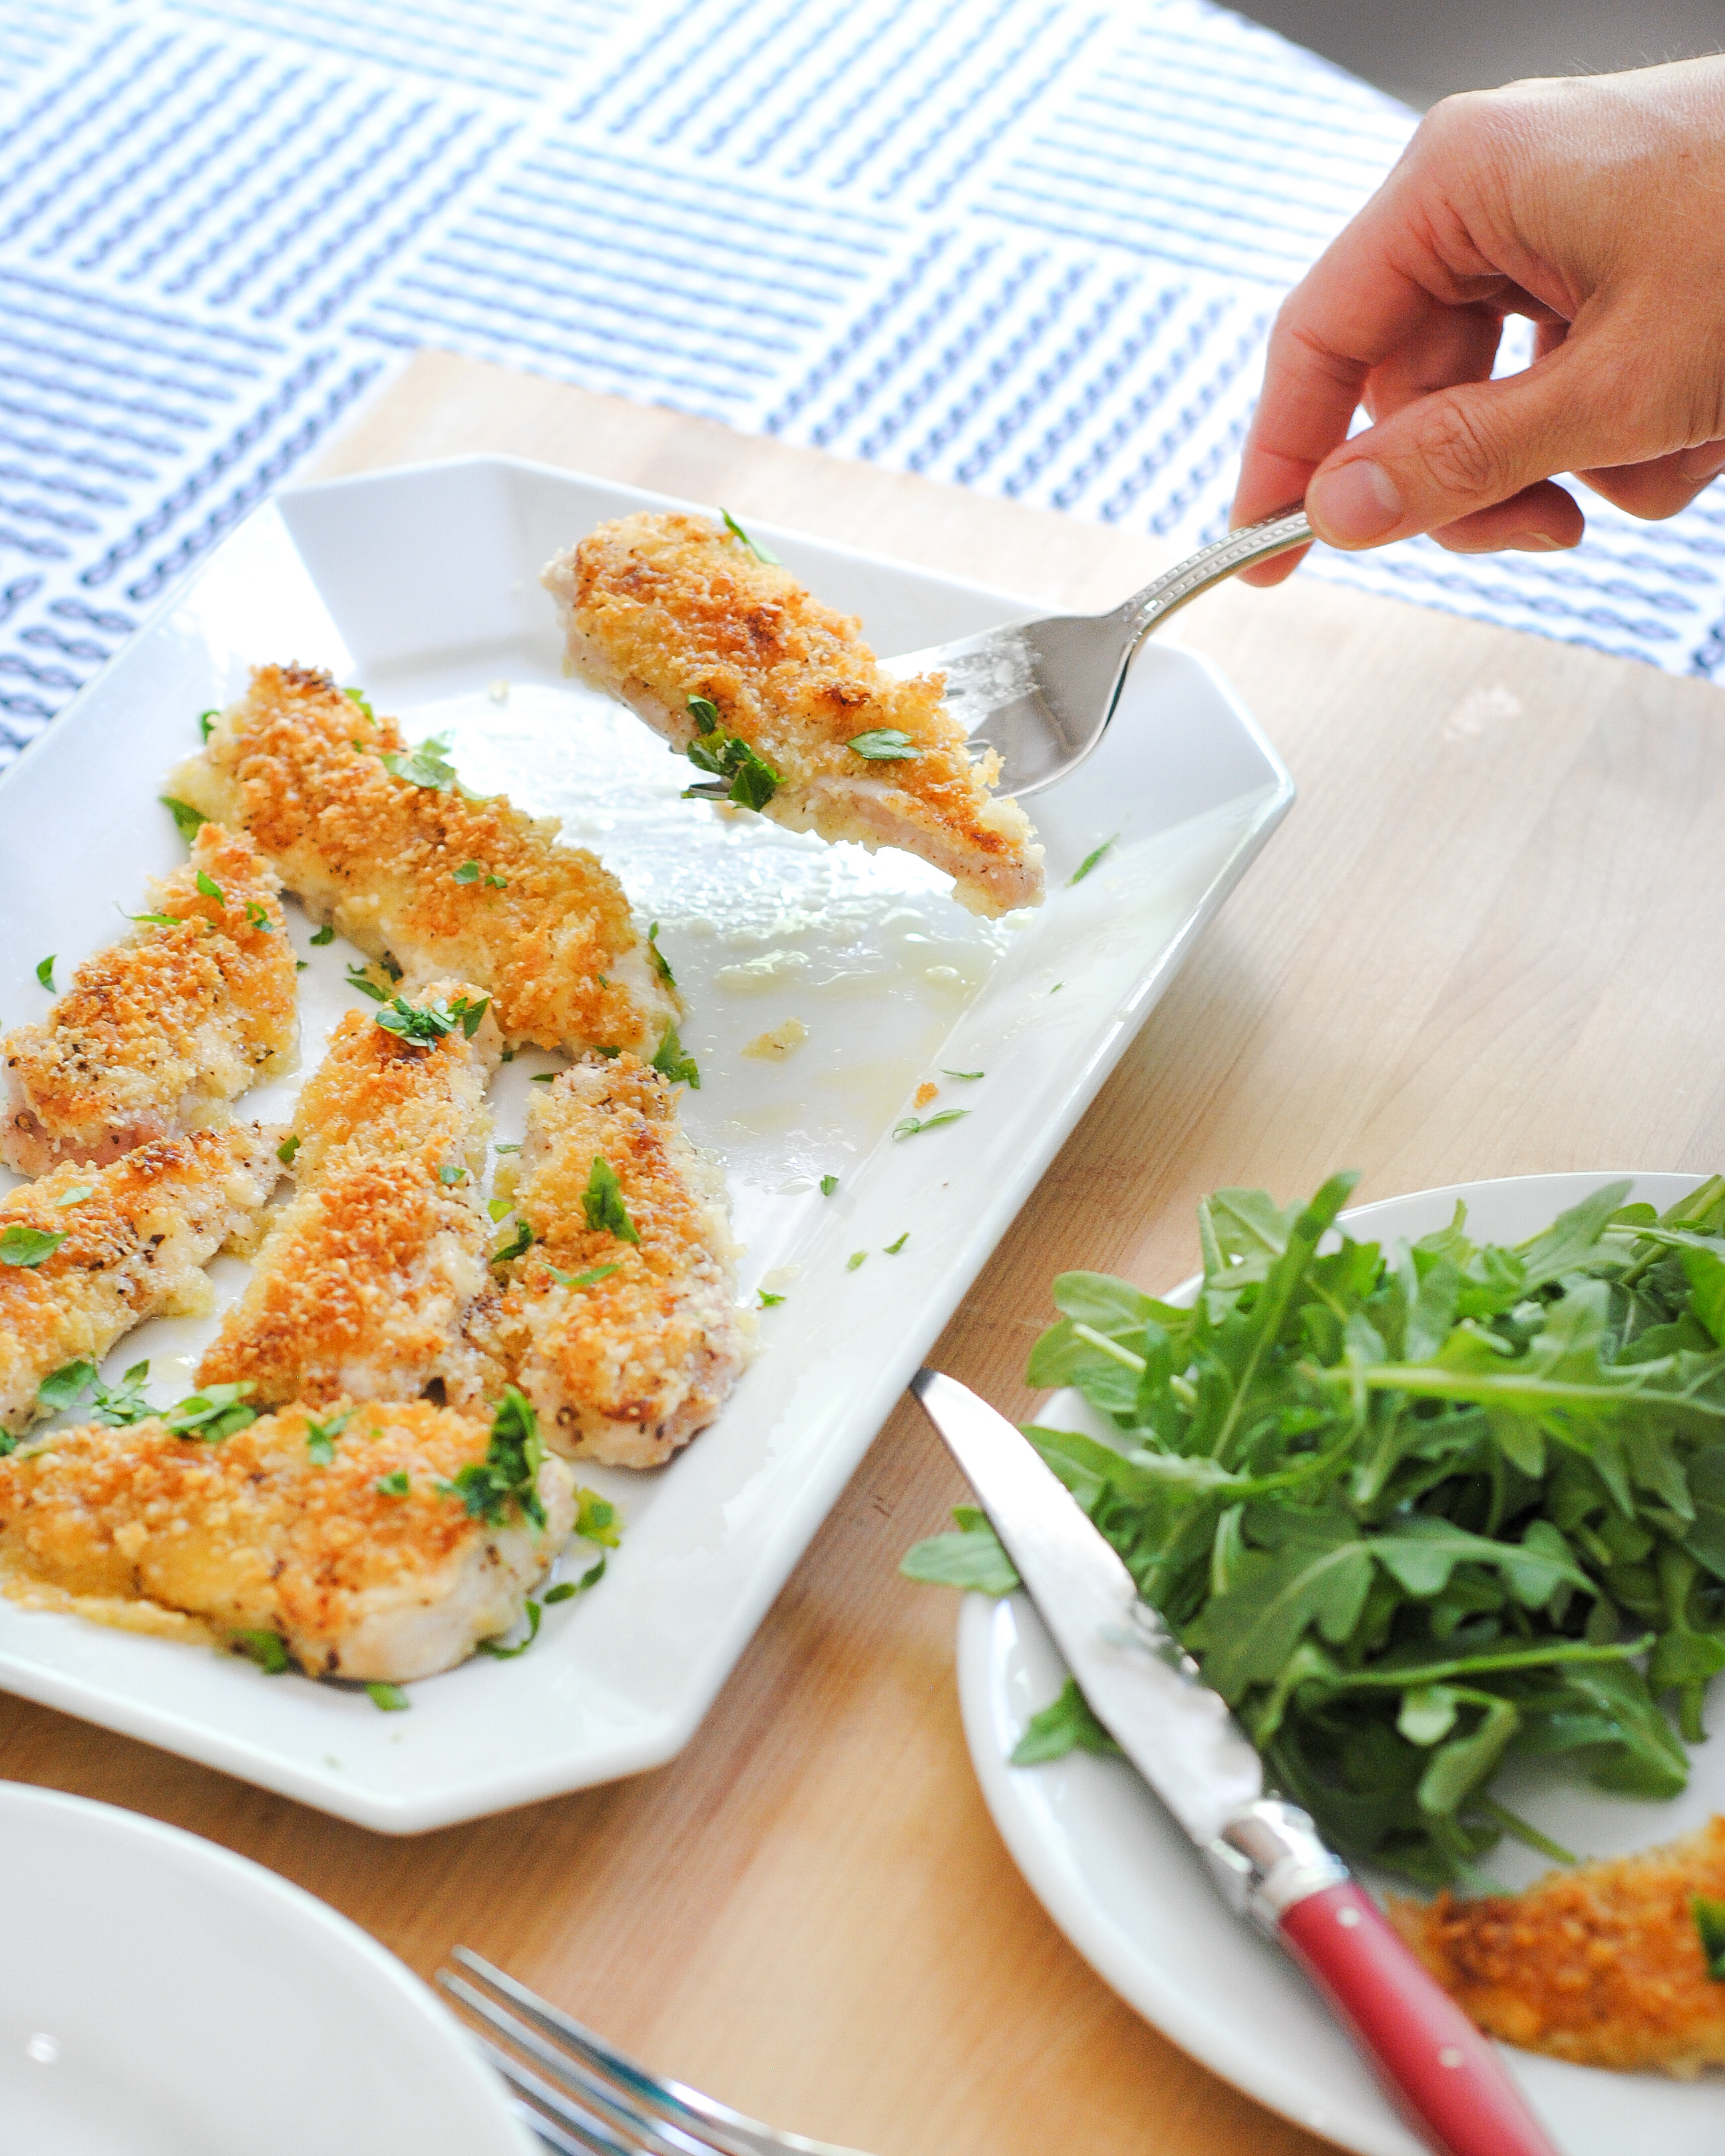 Baked Chicken Cutlet Recipes  Easy Baked Crispy Chicken Cutlets Recipe The Chronicles